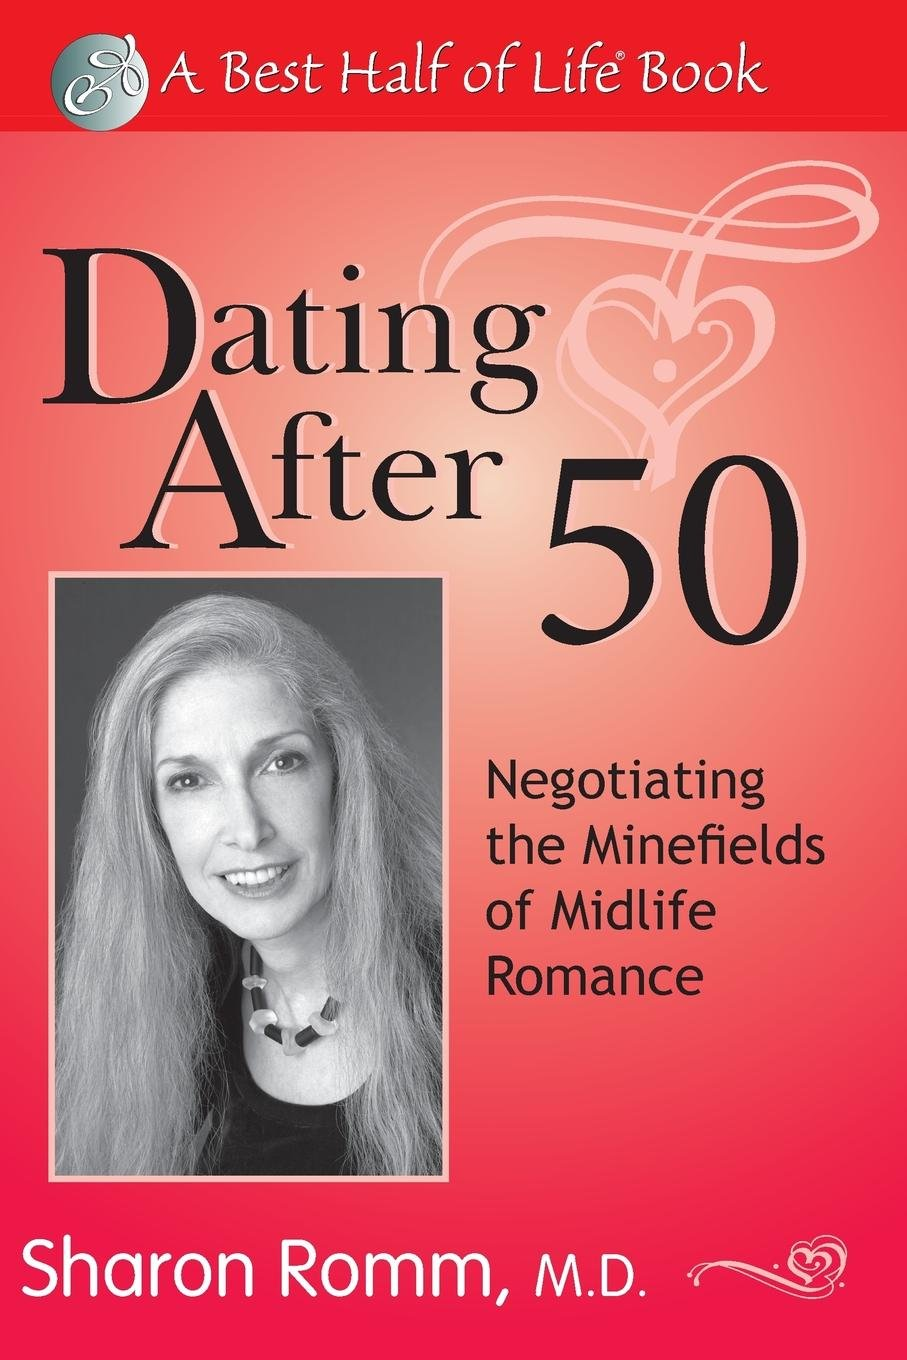 Dating After 50: Negotiating the Minefields of Mid-Life Romance (Best Half of Life Se) ebook